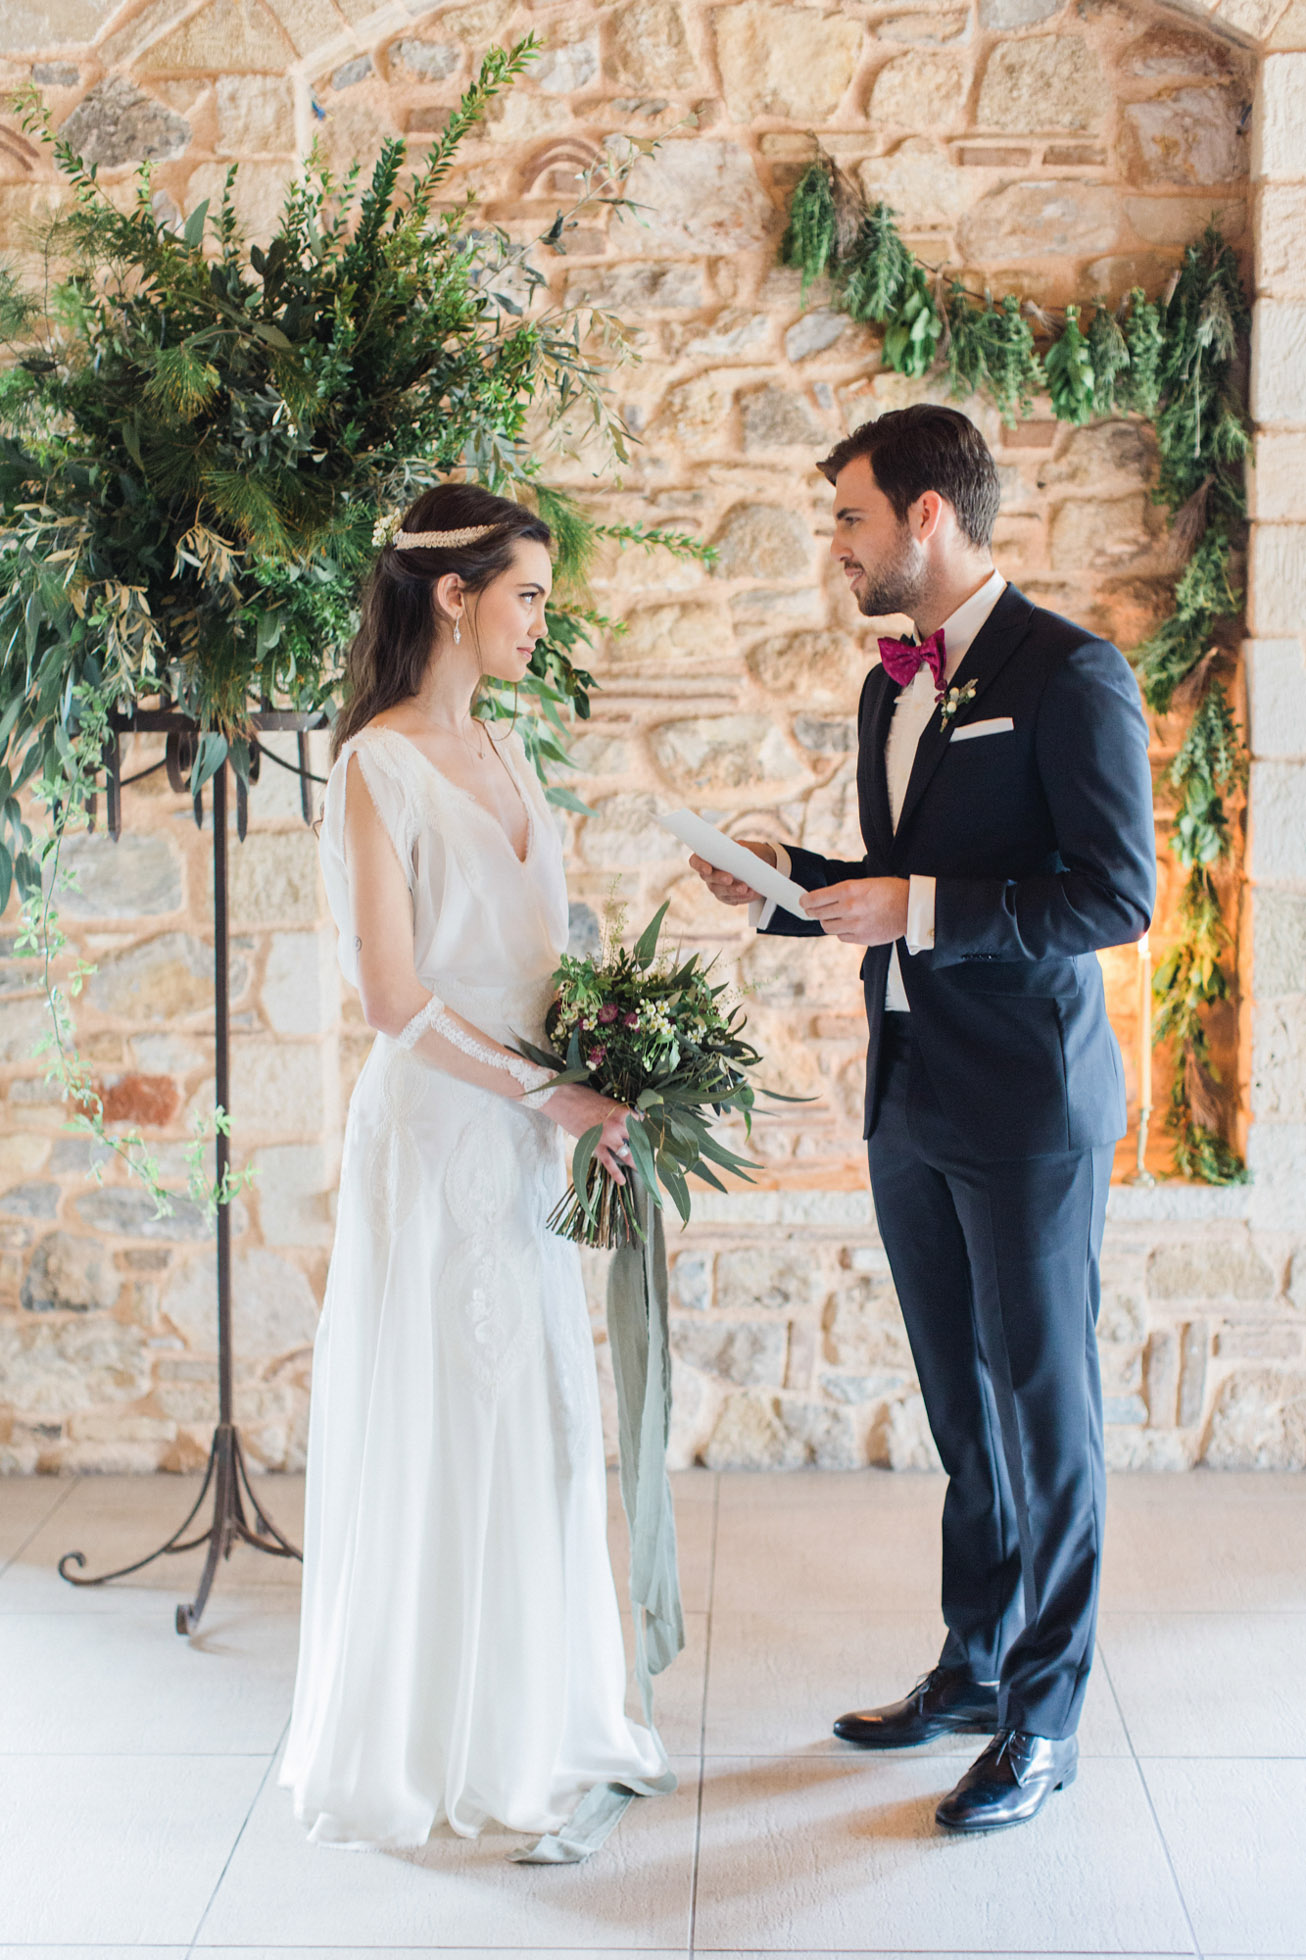 Bride And Groom During Their Wedding Ceremony Reading Vows Surrounded By The Decorations Of